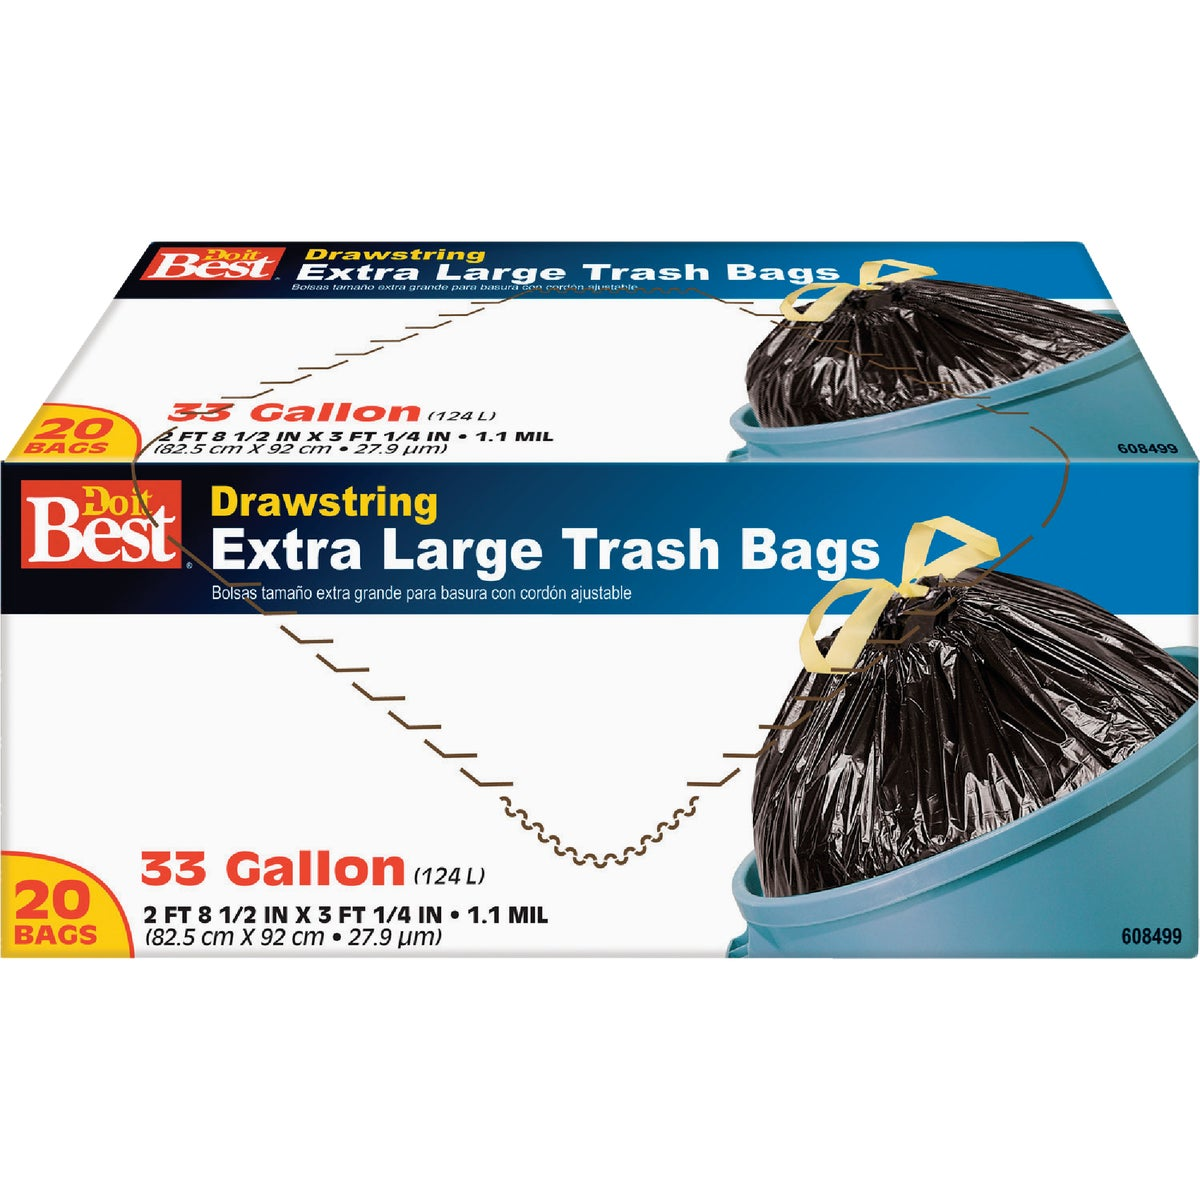 33GAL/20CT TRASH BAG - 608499 by Presto Products